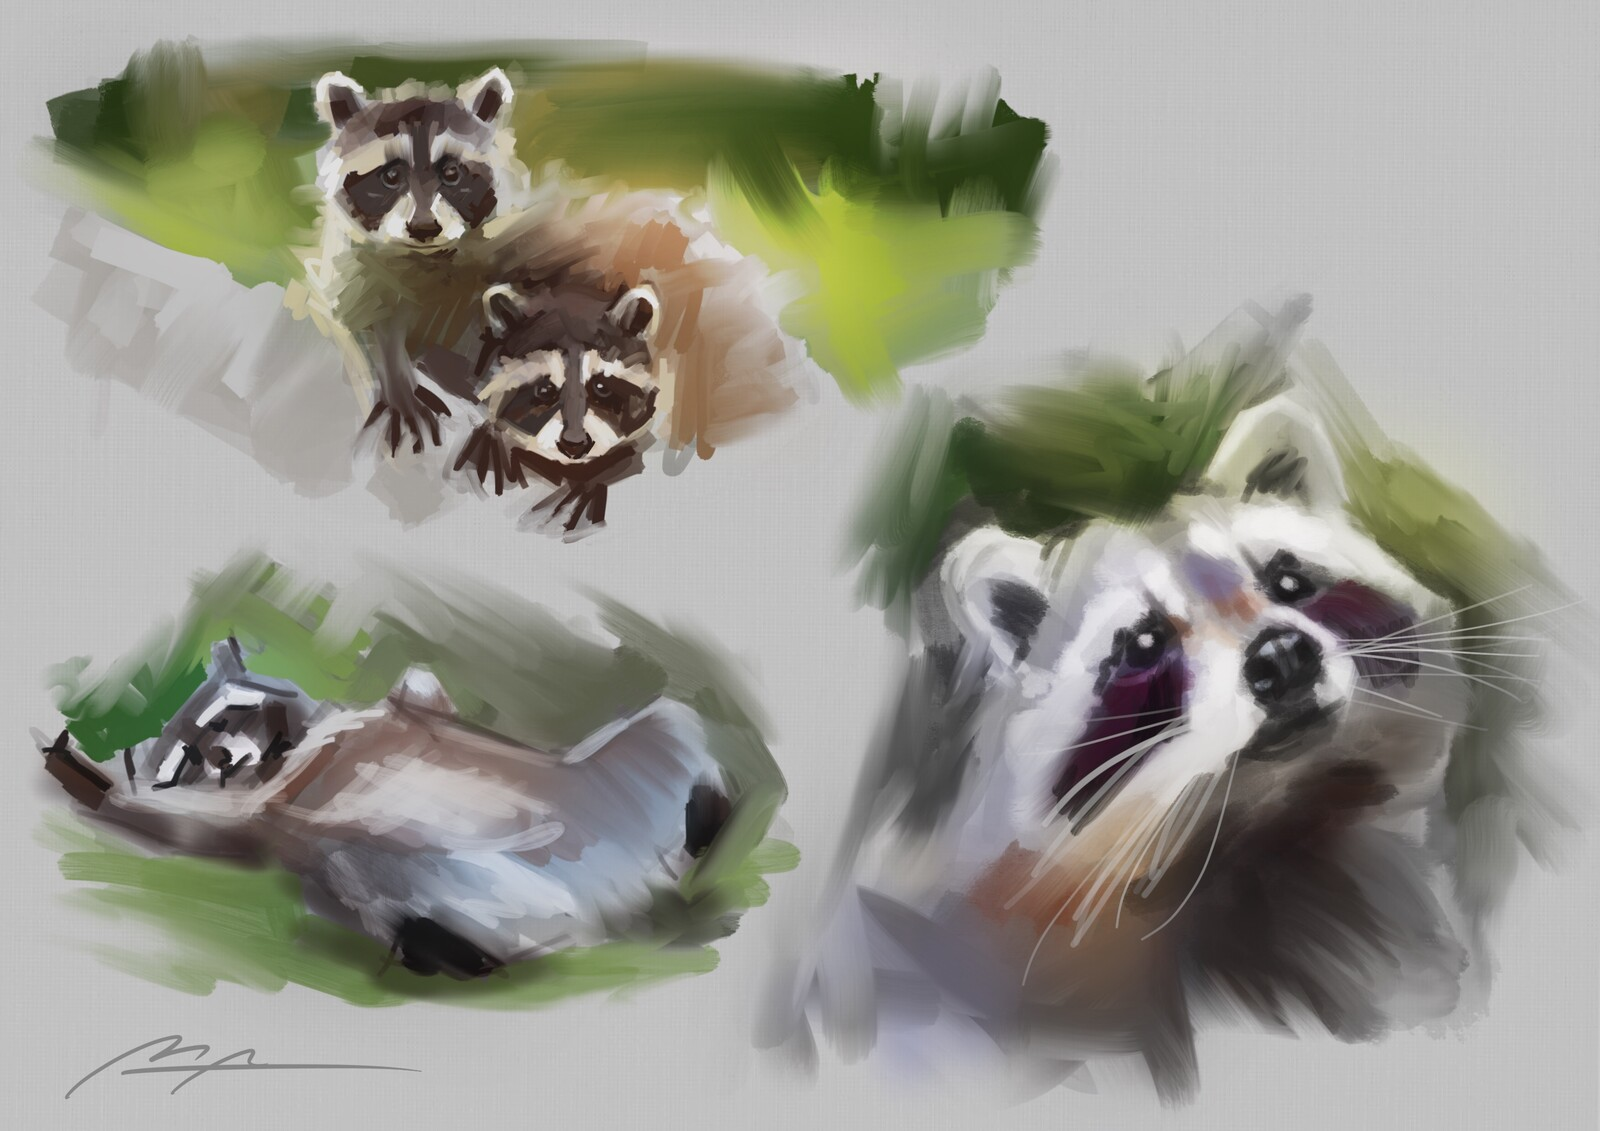 Raccoon sketches